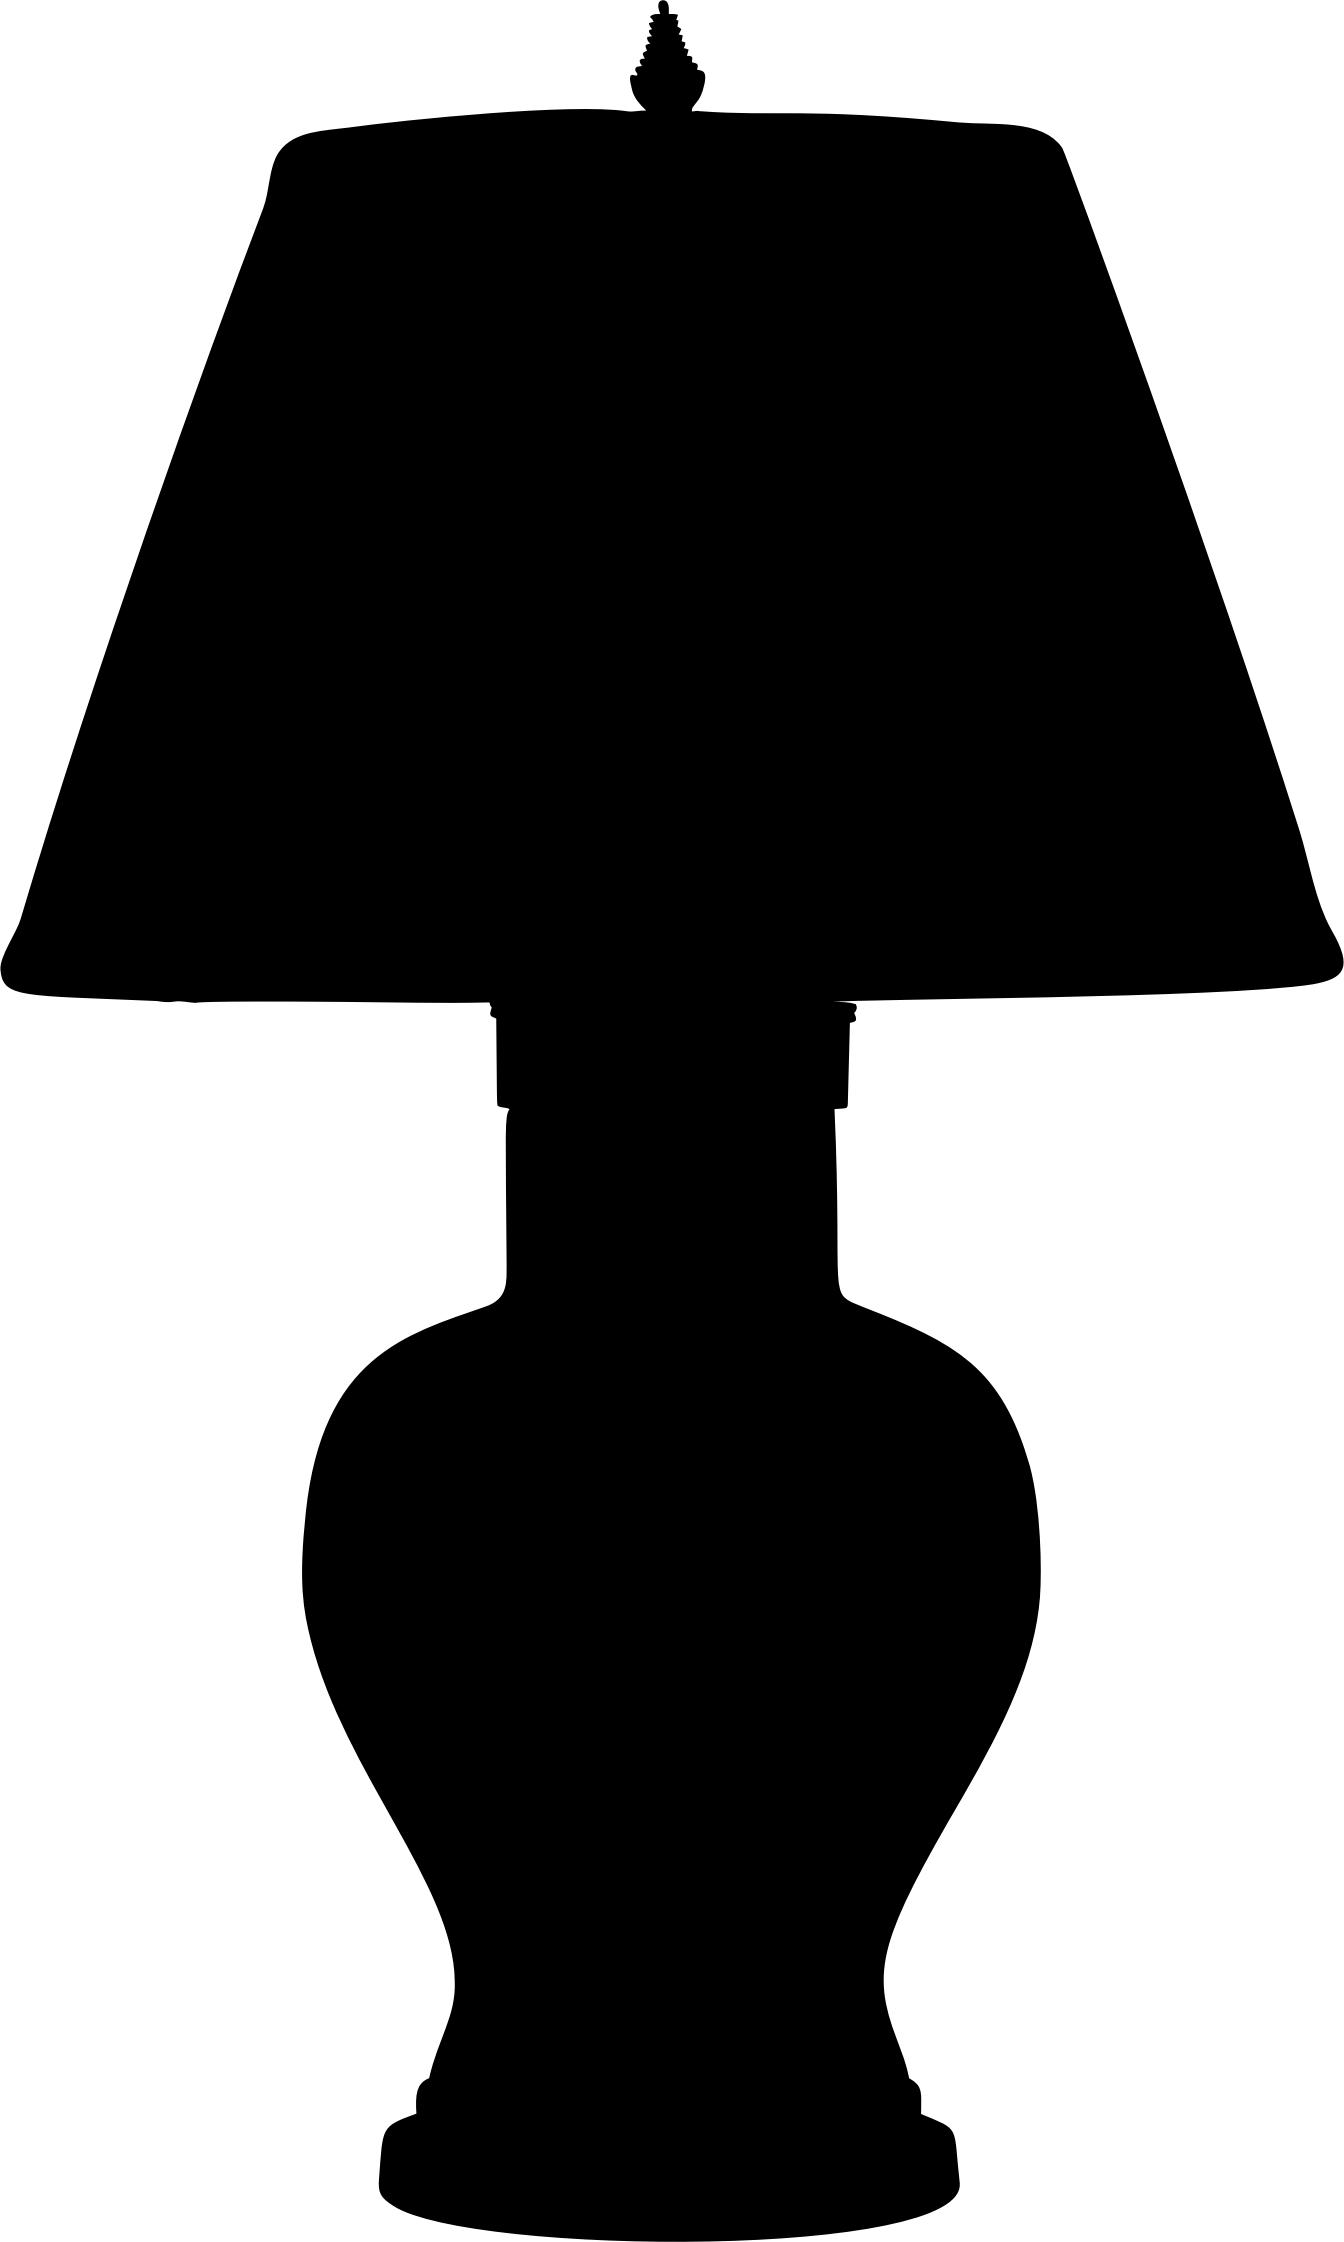 1344x2242 Table Lamp Silhouette Icons Png